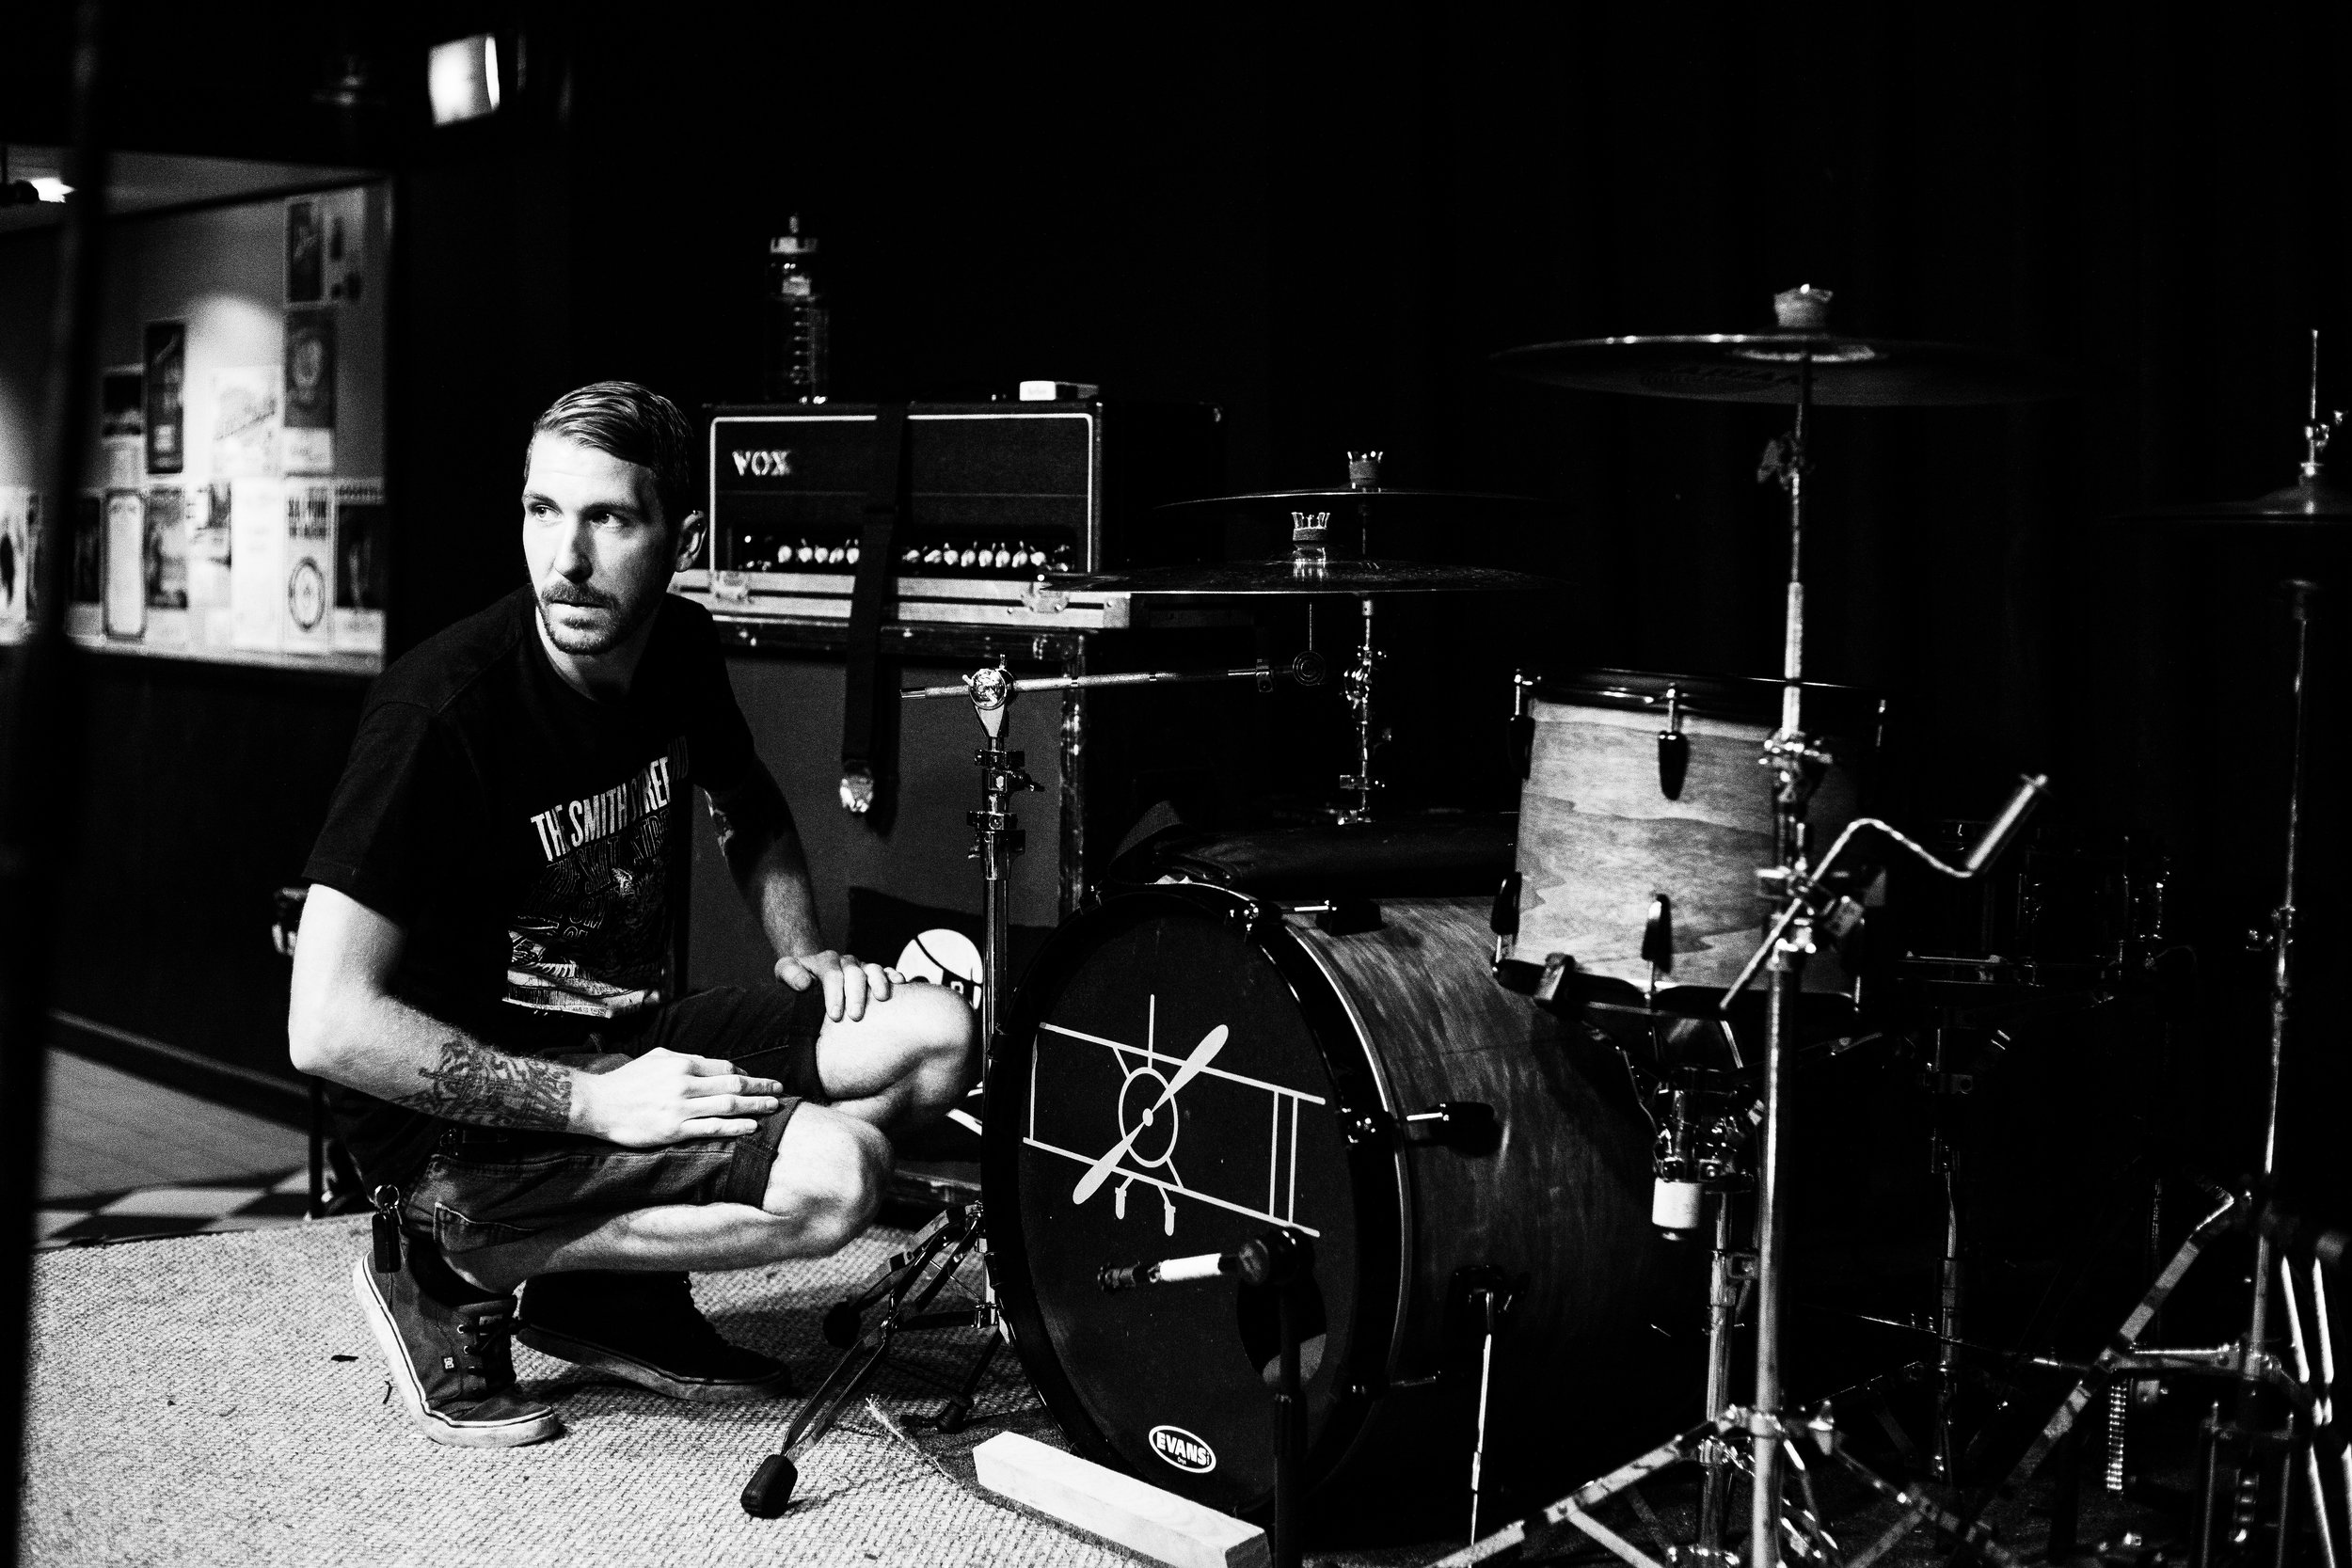 Steve Gibson finishes setting up his drums before soundcheck in Boston, Massachusetts.